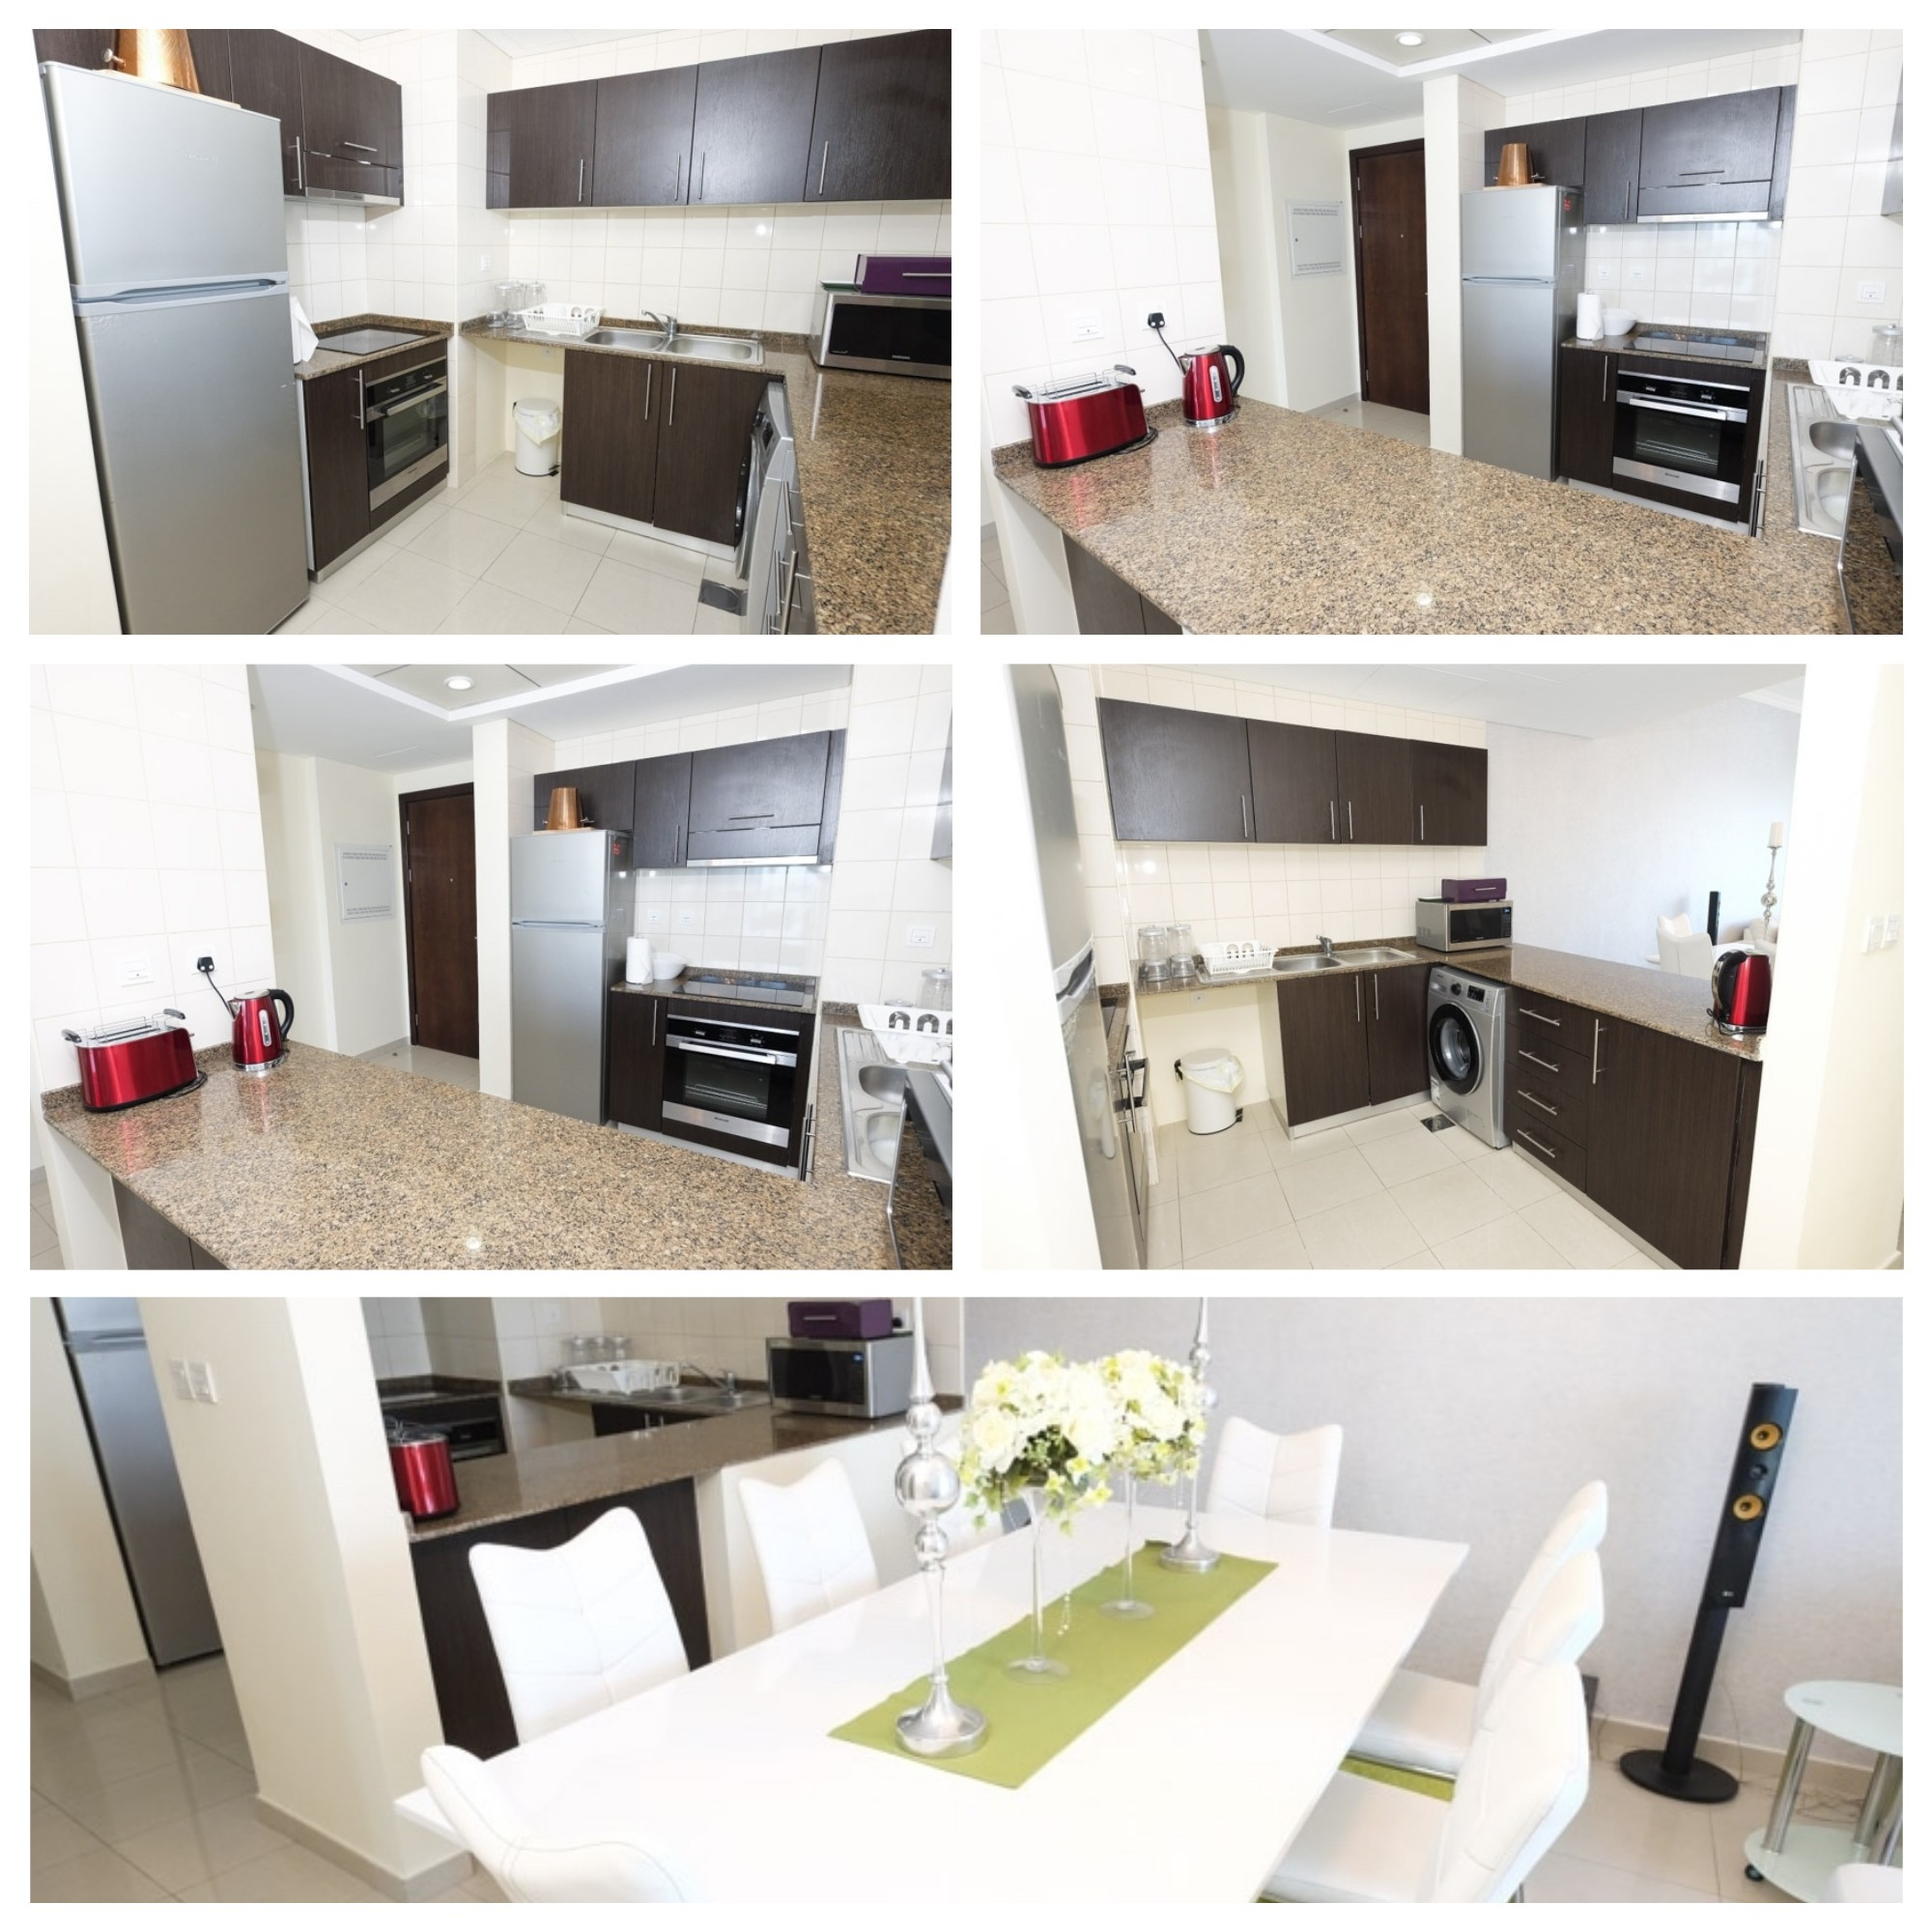 Waterfront Apartments: High-rise Waterfront 3 Bedroom Apartment